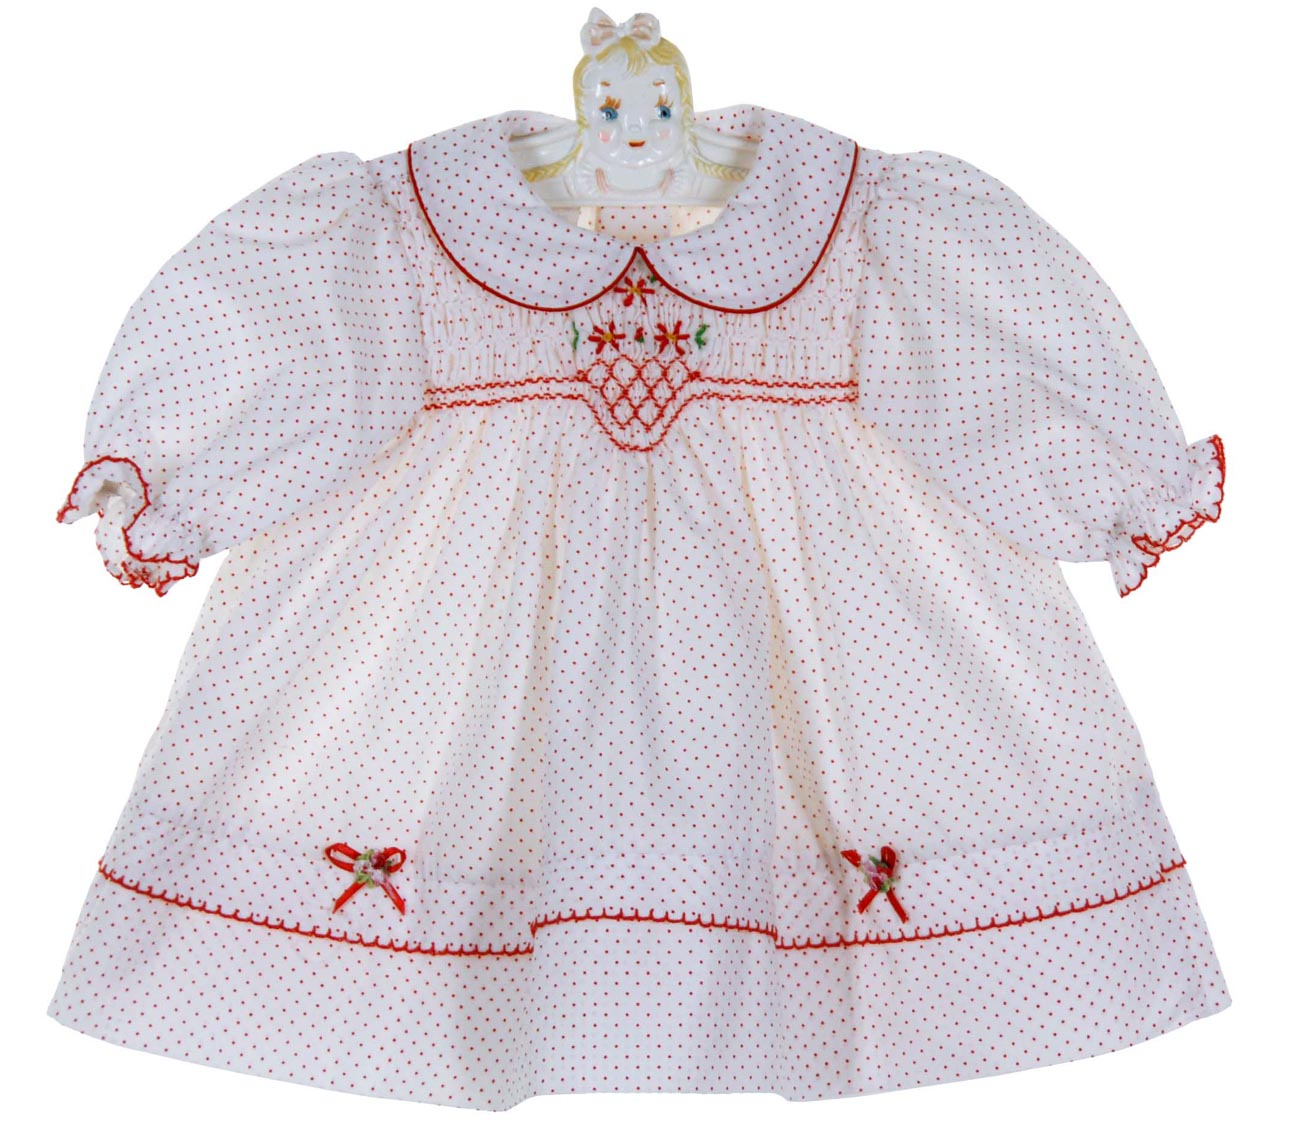 034822a2d NEW Polly Flinders White Dotted Smocked Dress with Red Flowers